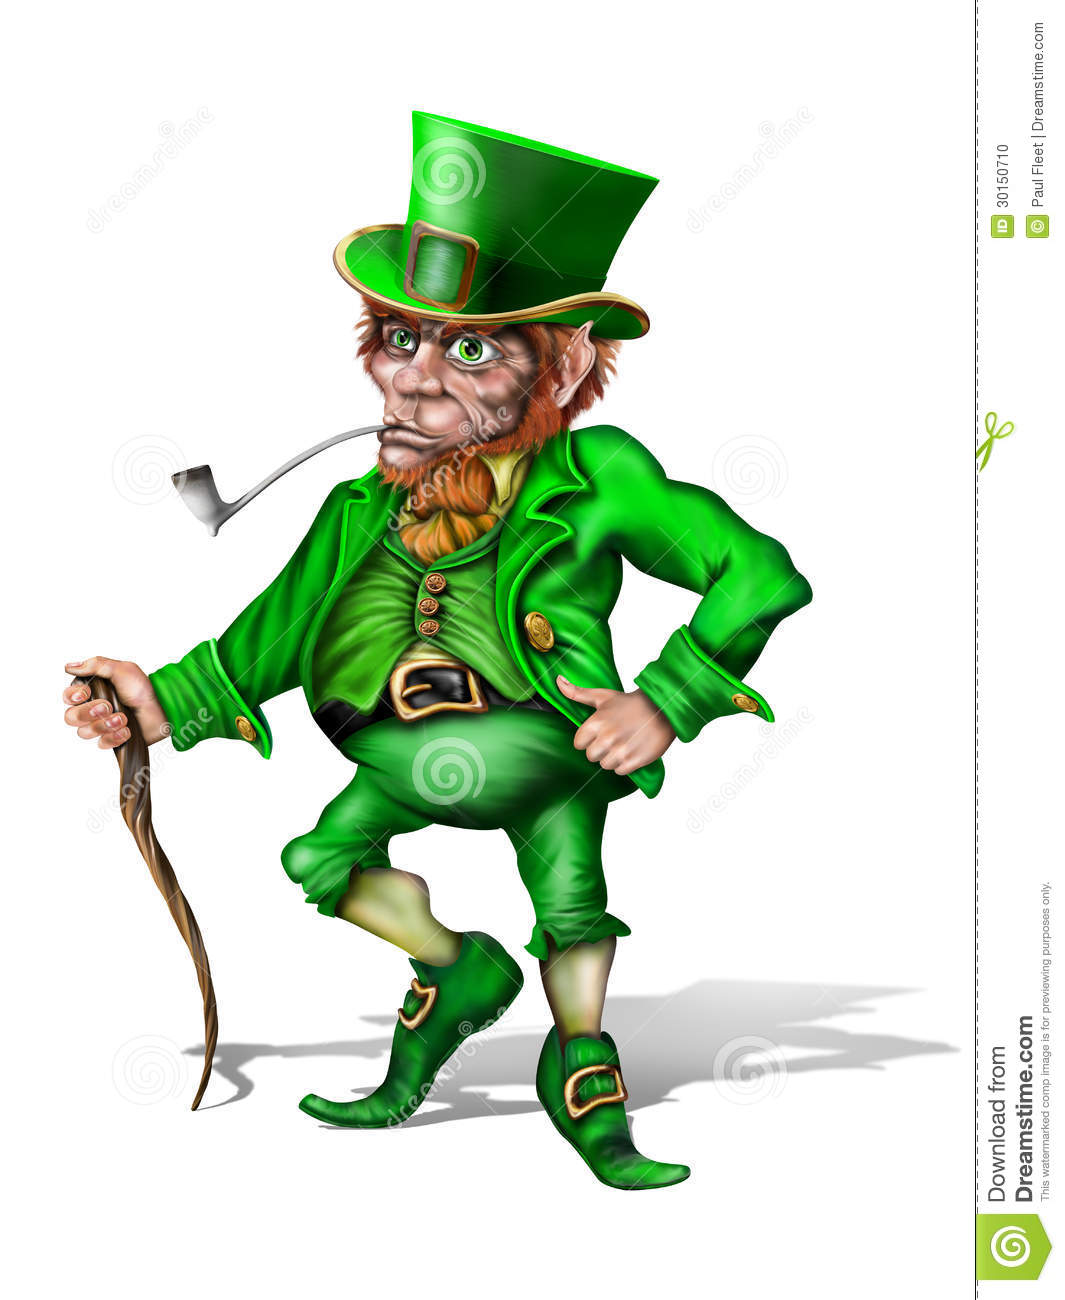 Illustration of an Irish leprechaun holding a shillelagh.